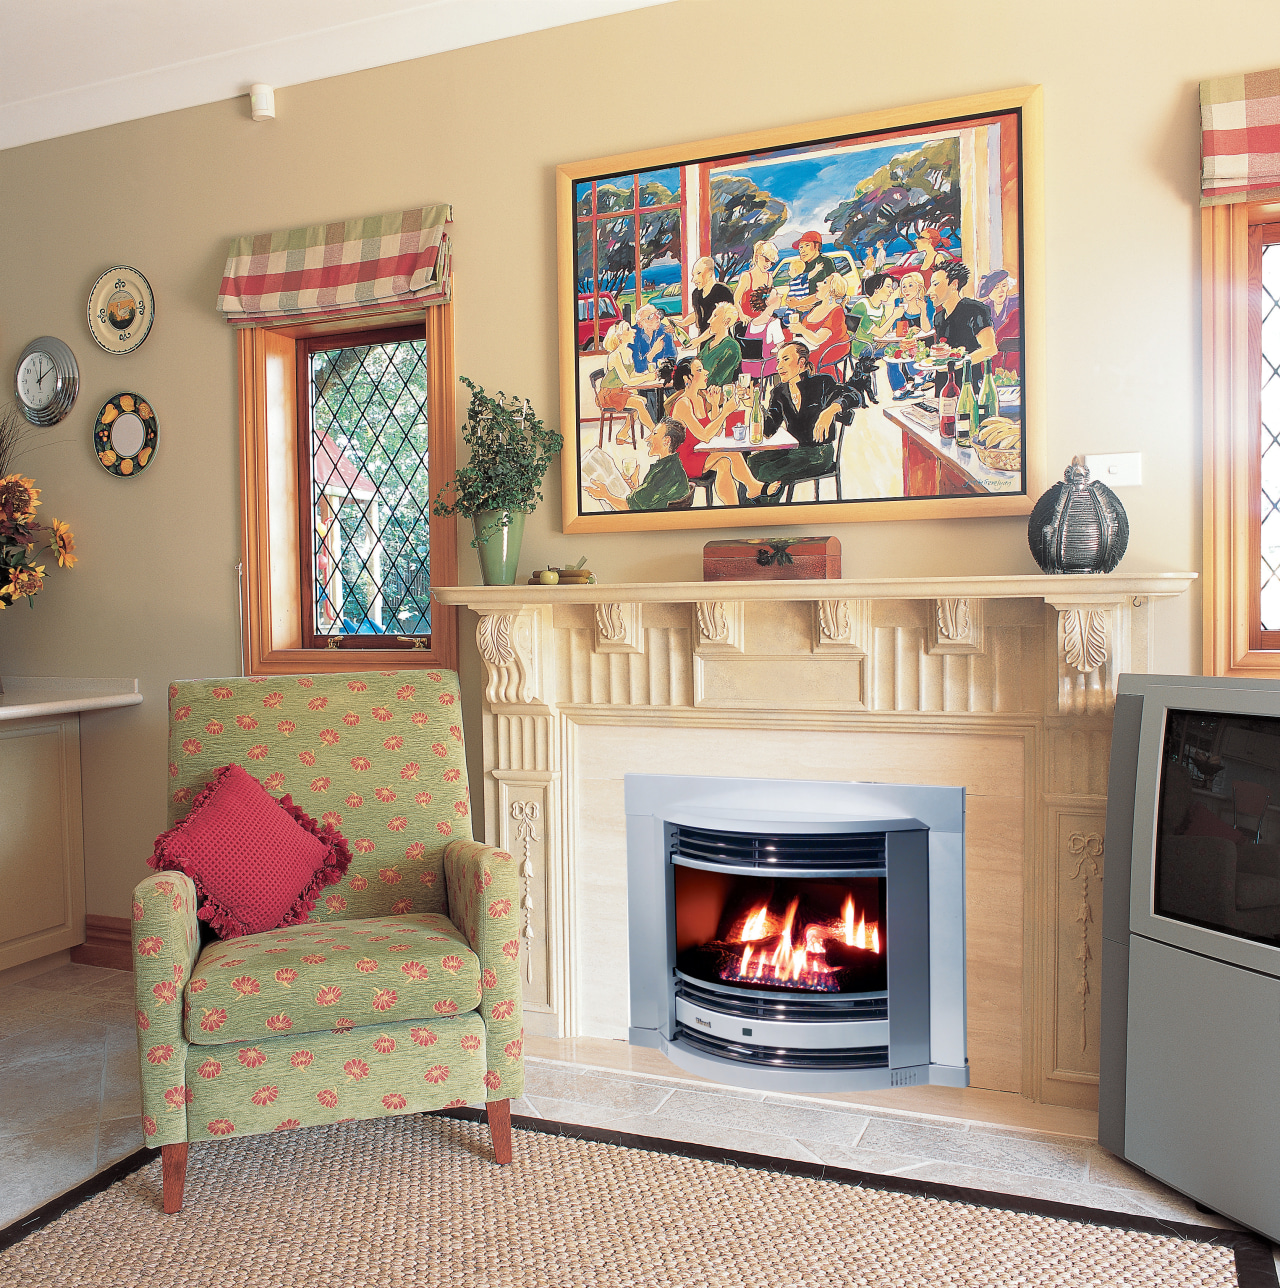 Lounge room with gas fireplace in cream surround, fireplace, furniture, hearth, home, home appliance, interior design, living room, room, wall, wood burning stove, white, orange